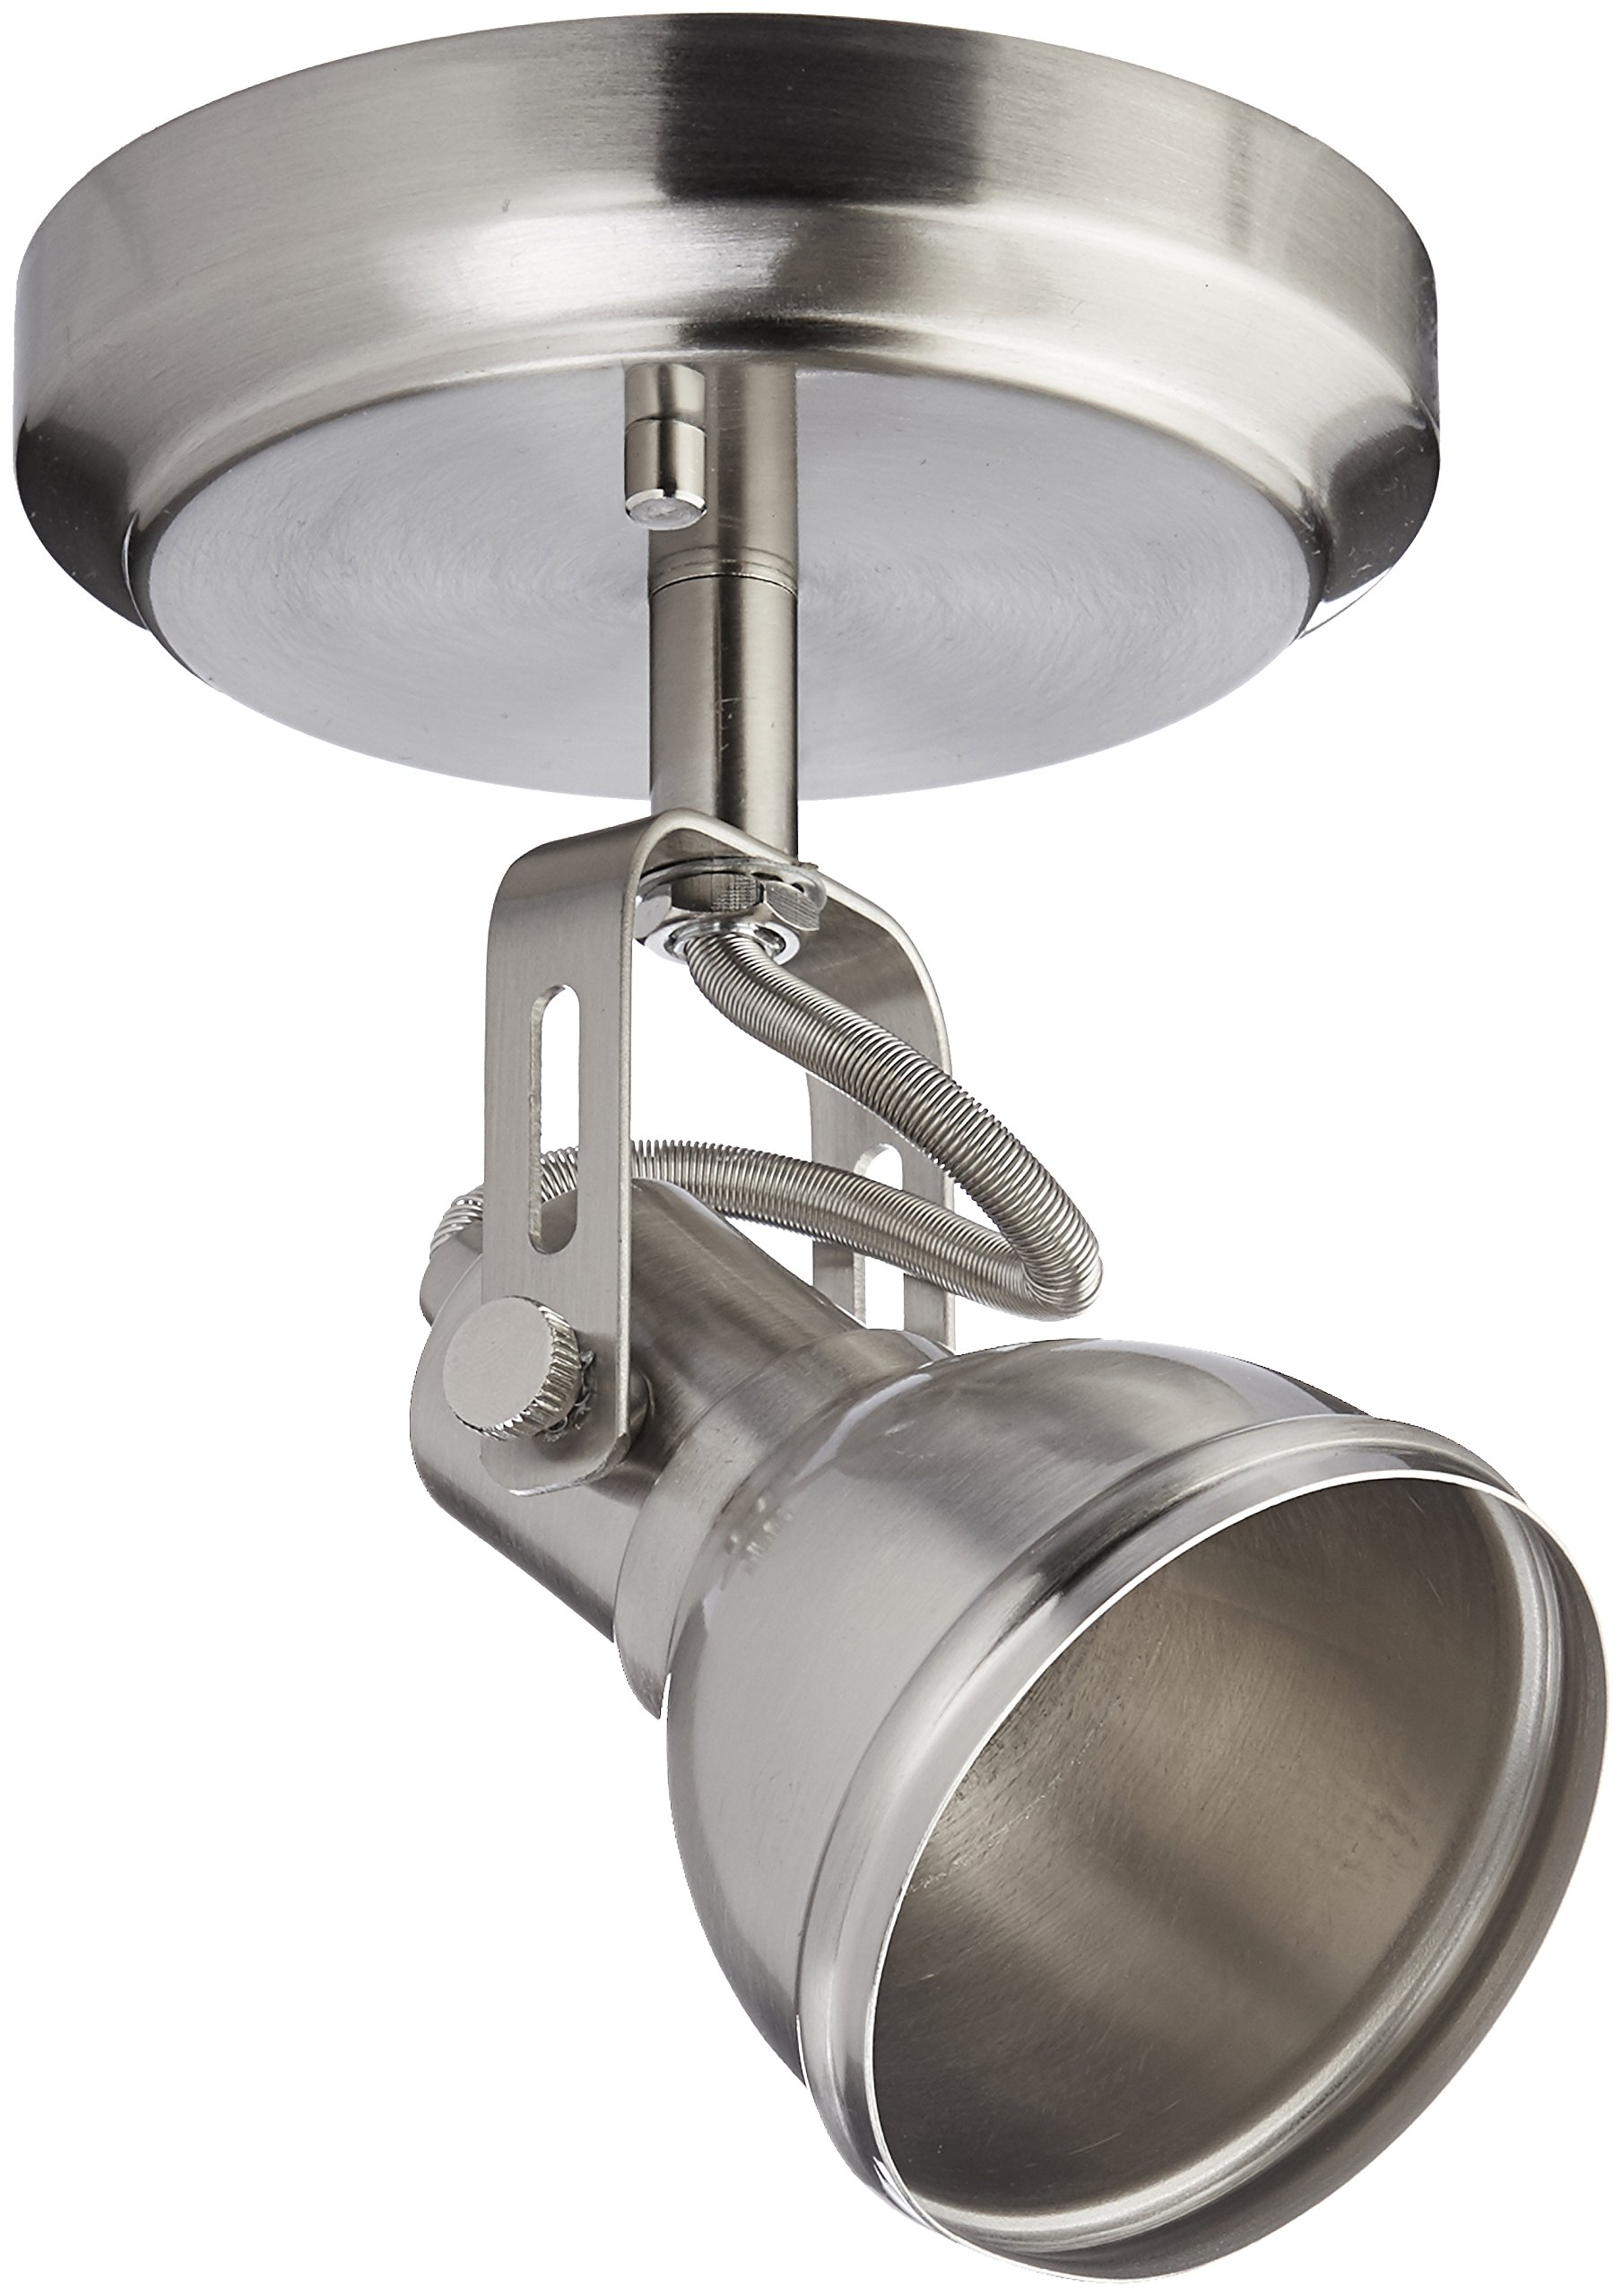 CANARM ICW622A01BN10 LTD Polo 1 Light Ceiling/Wall, Brushed Nickel with Adjustable Head by Canarm (Image #1)